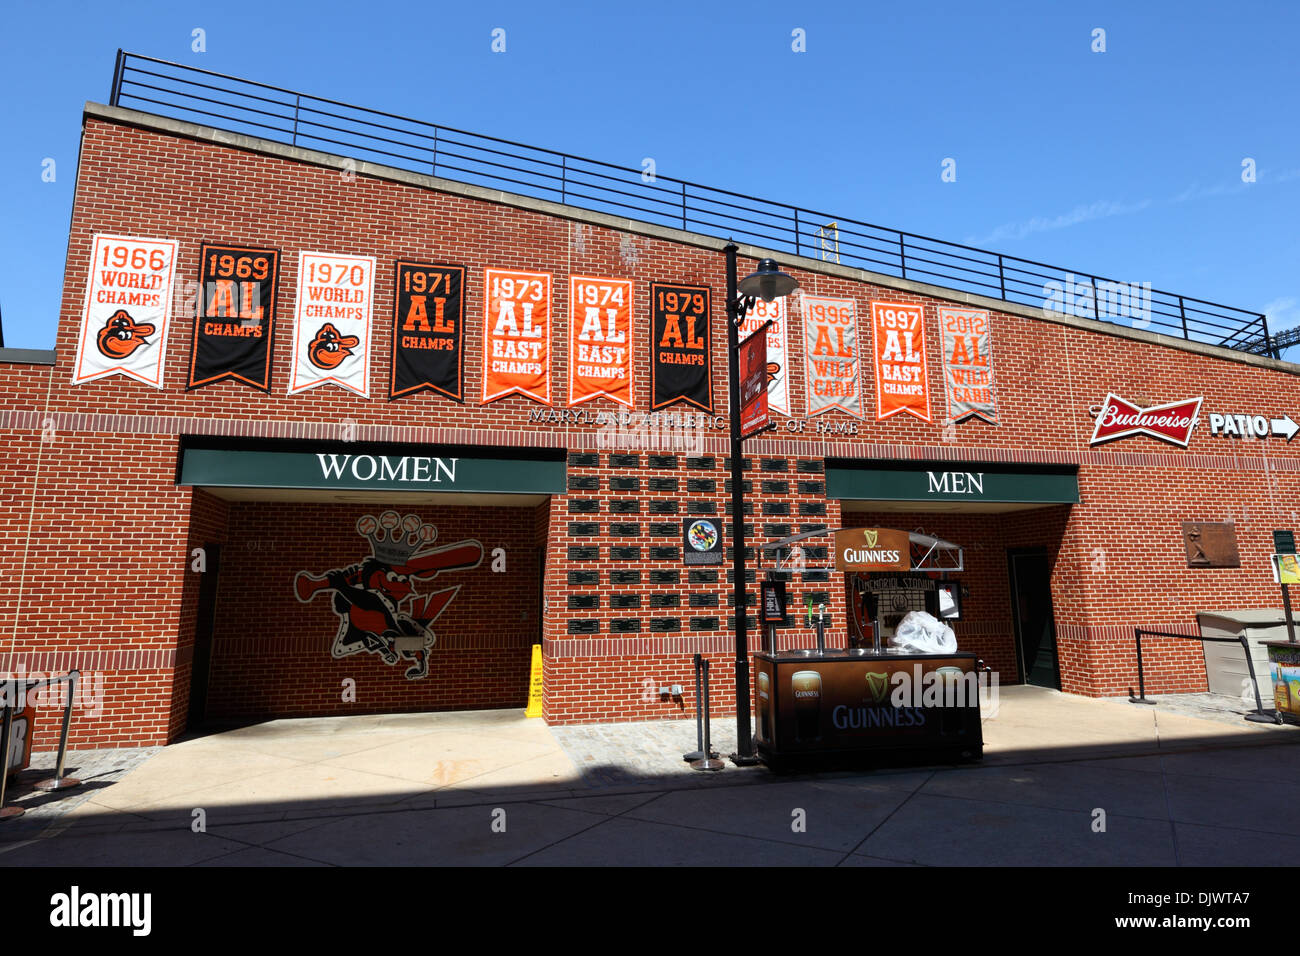 Maryland Athletic Hall Of Fame In Oriole Park Home Baltimore Orioles Baseball Team Camden Yards USA